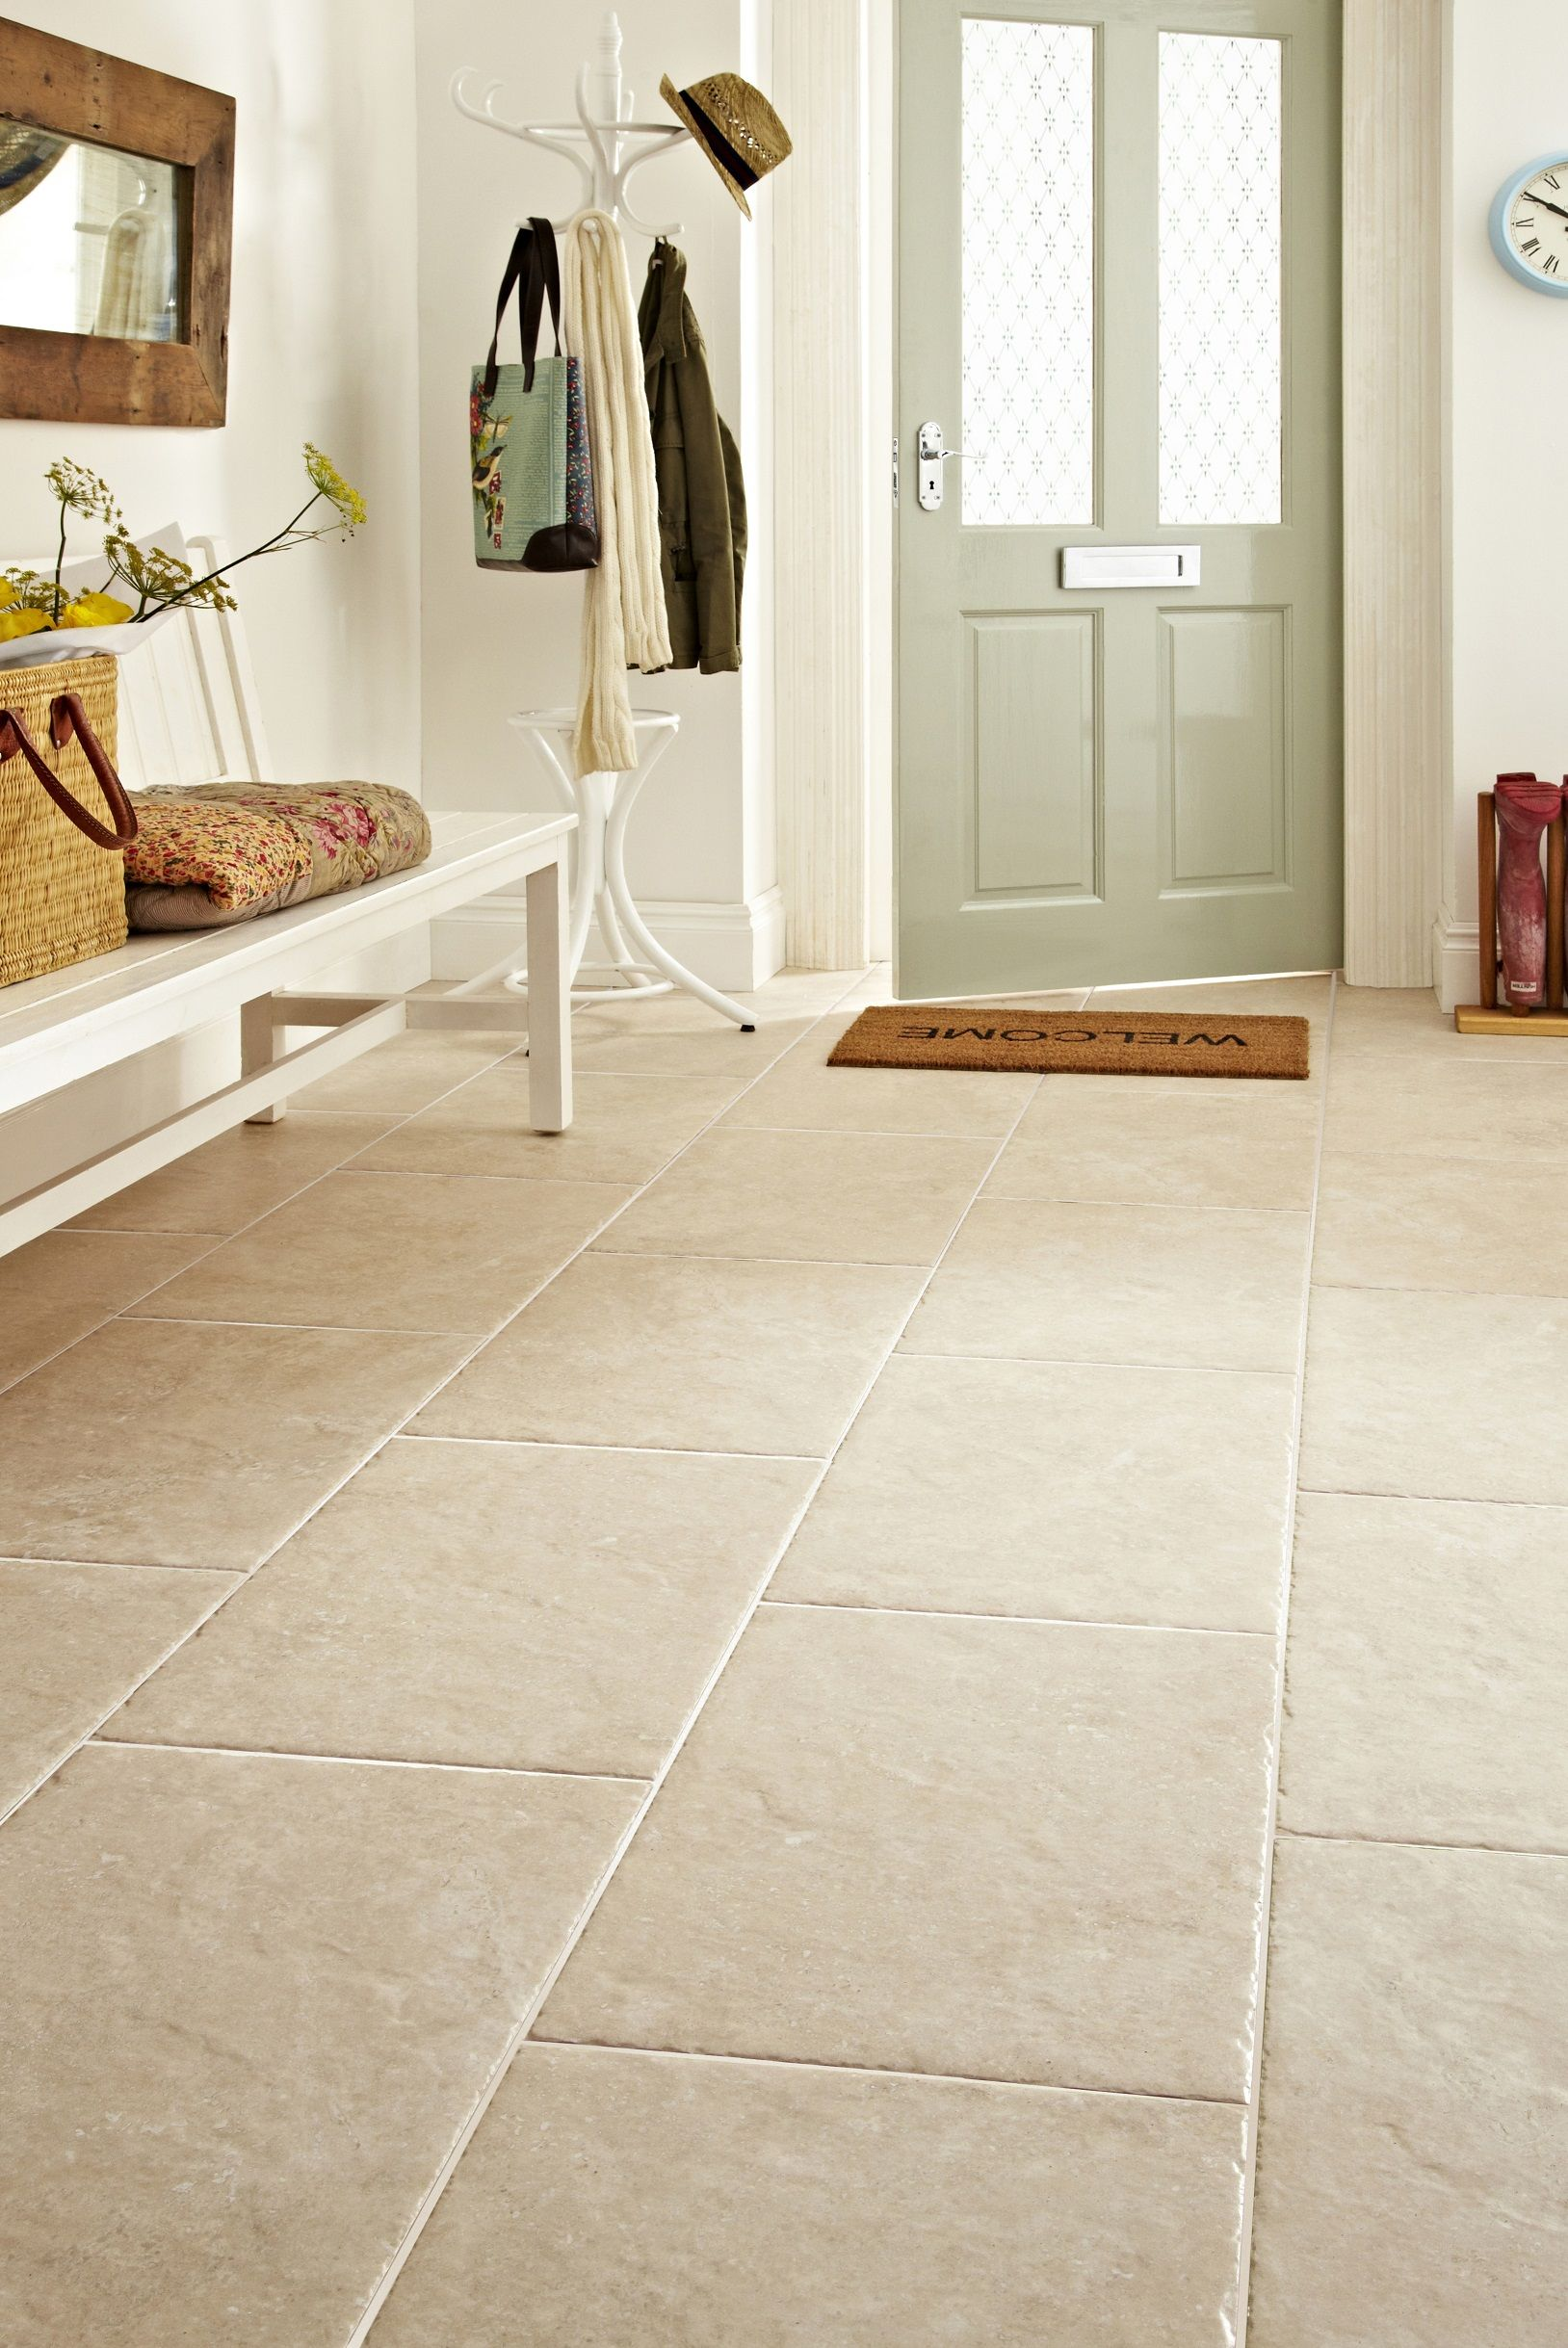 dining room tile flooring. devon bone from topps tiles - potential for the dining room floor tile flooring o